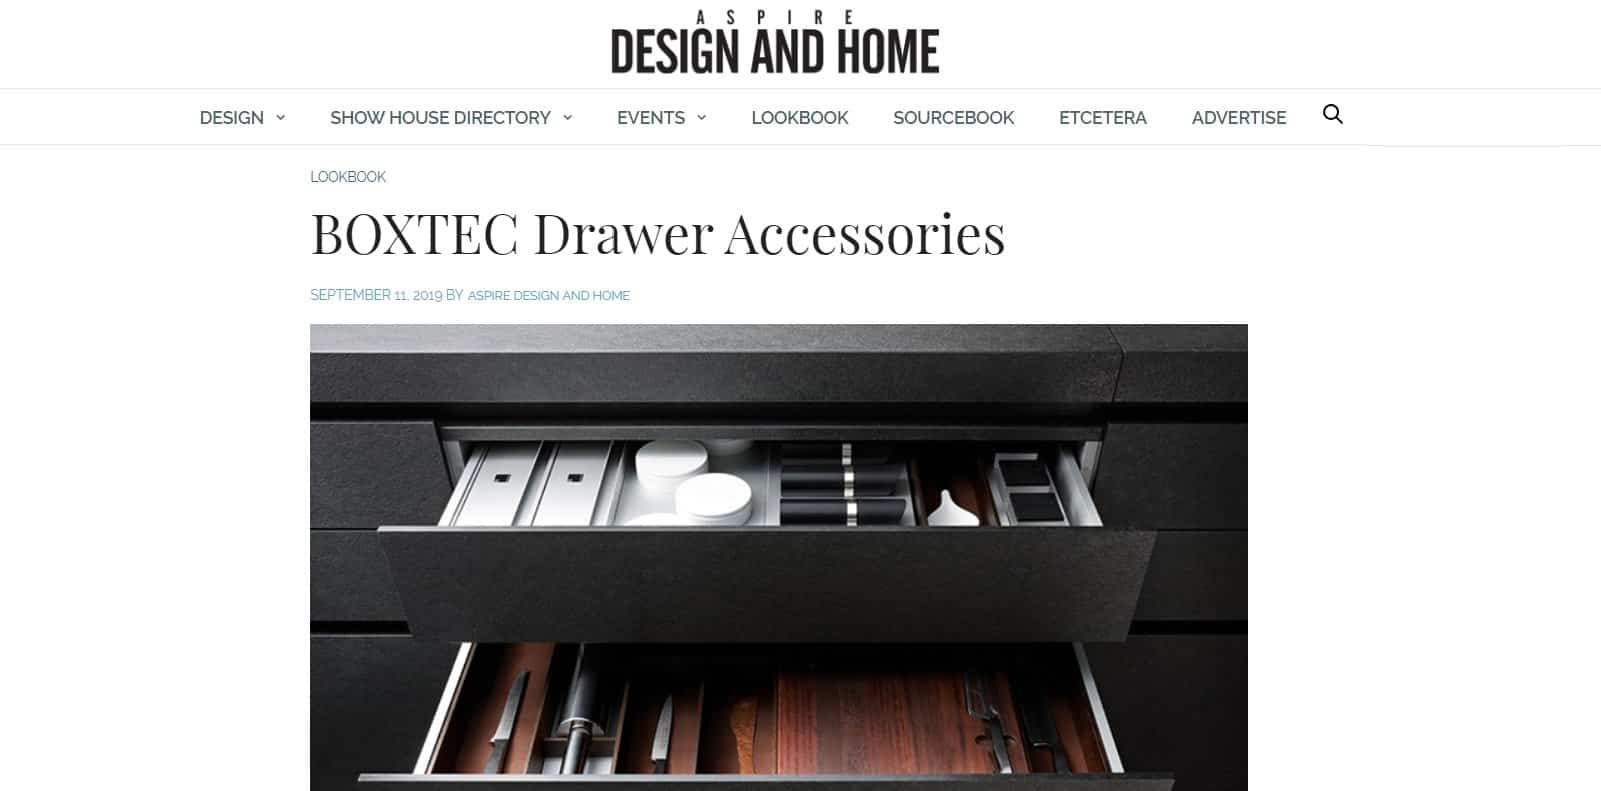 aspire desig and -home article featuring eggersmann boxtec drawer accessories and organizers